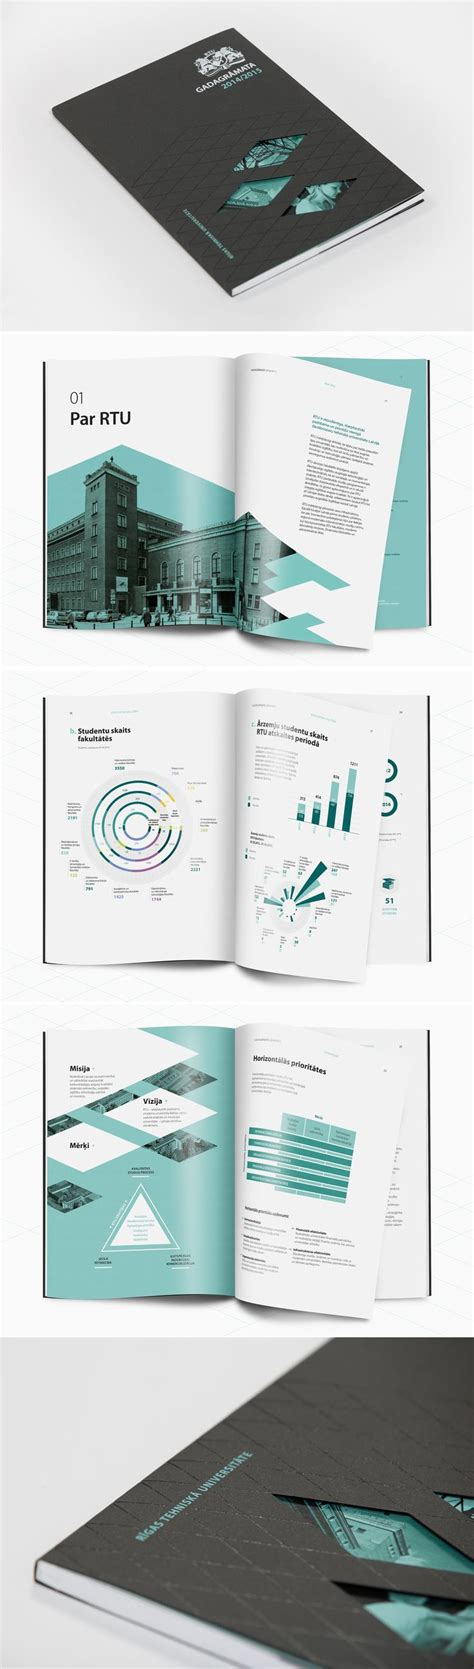 design concept report best 25 higher design ideas on pinterest morrison